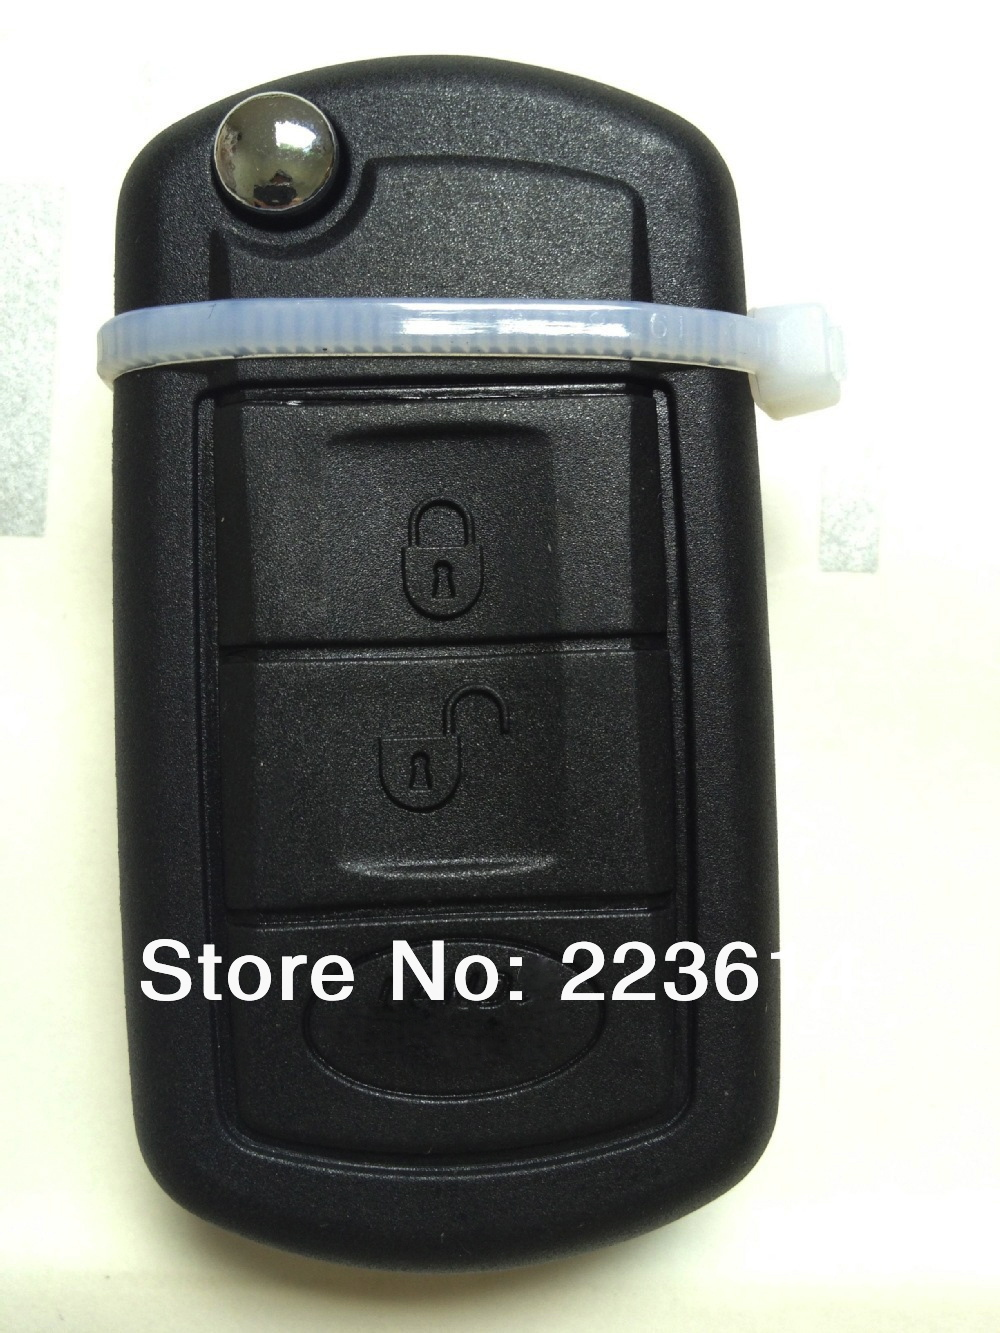 new black 3 button remote key shell for land rover discovery3/Range Rover/Land Rover Freelander with uncut blade free shipping